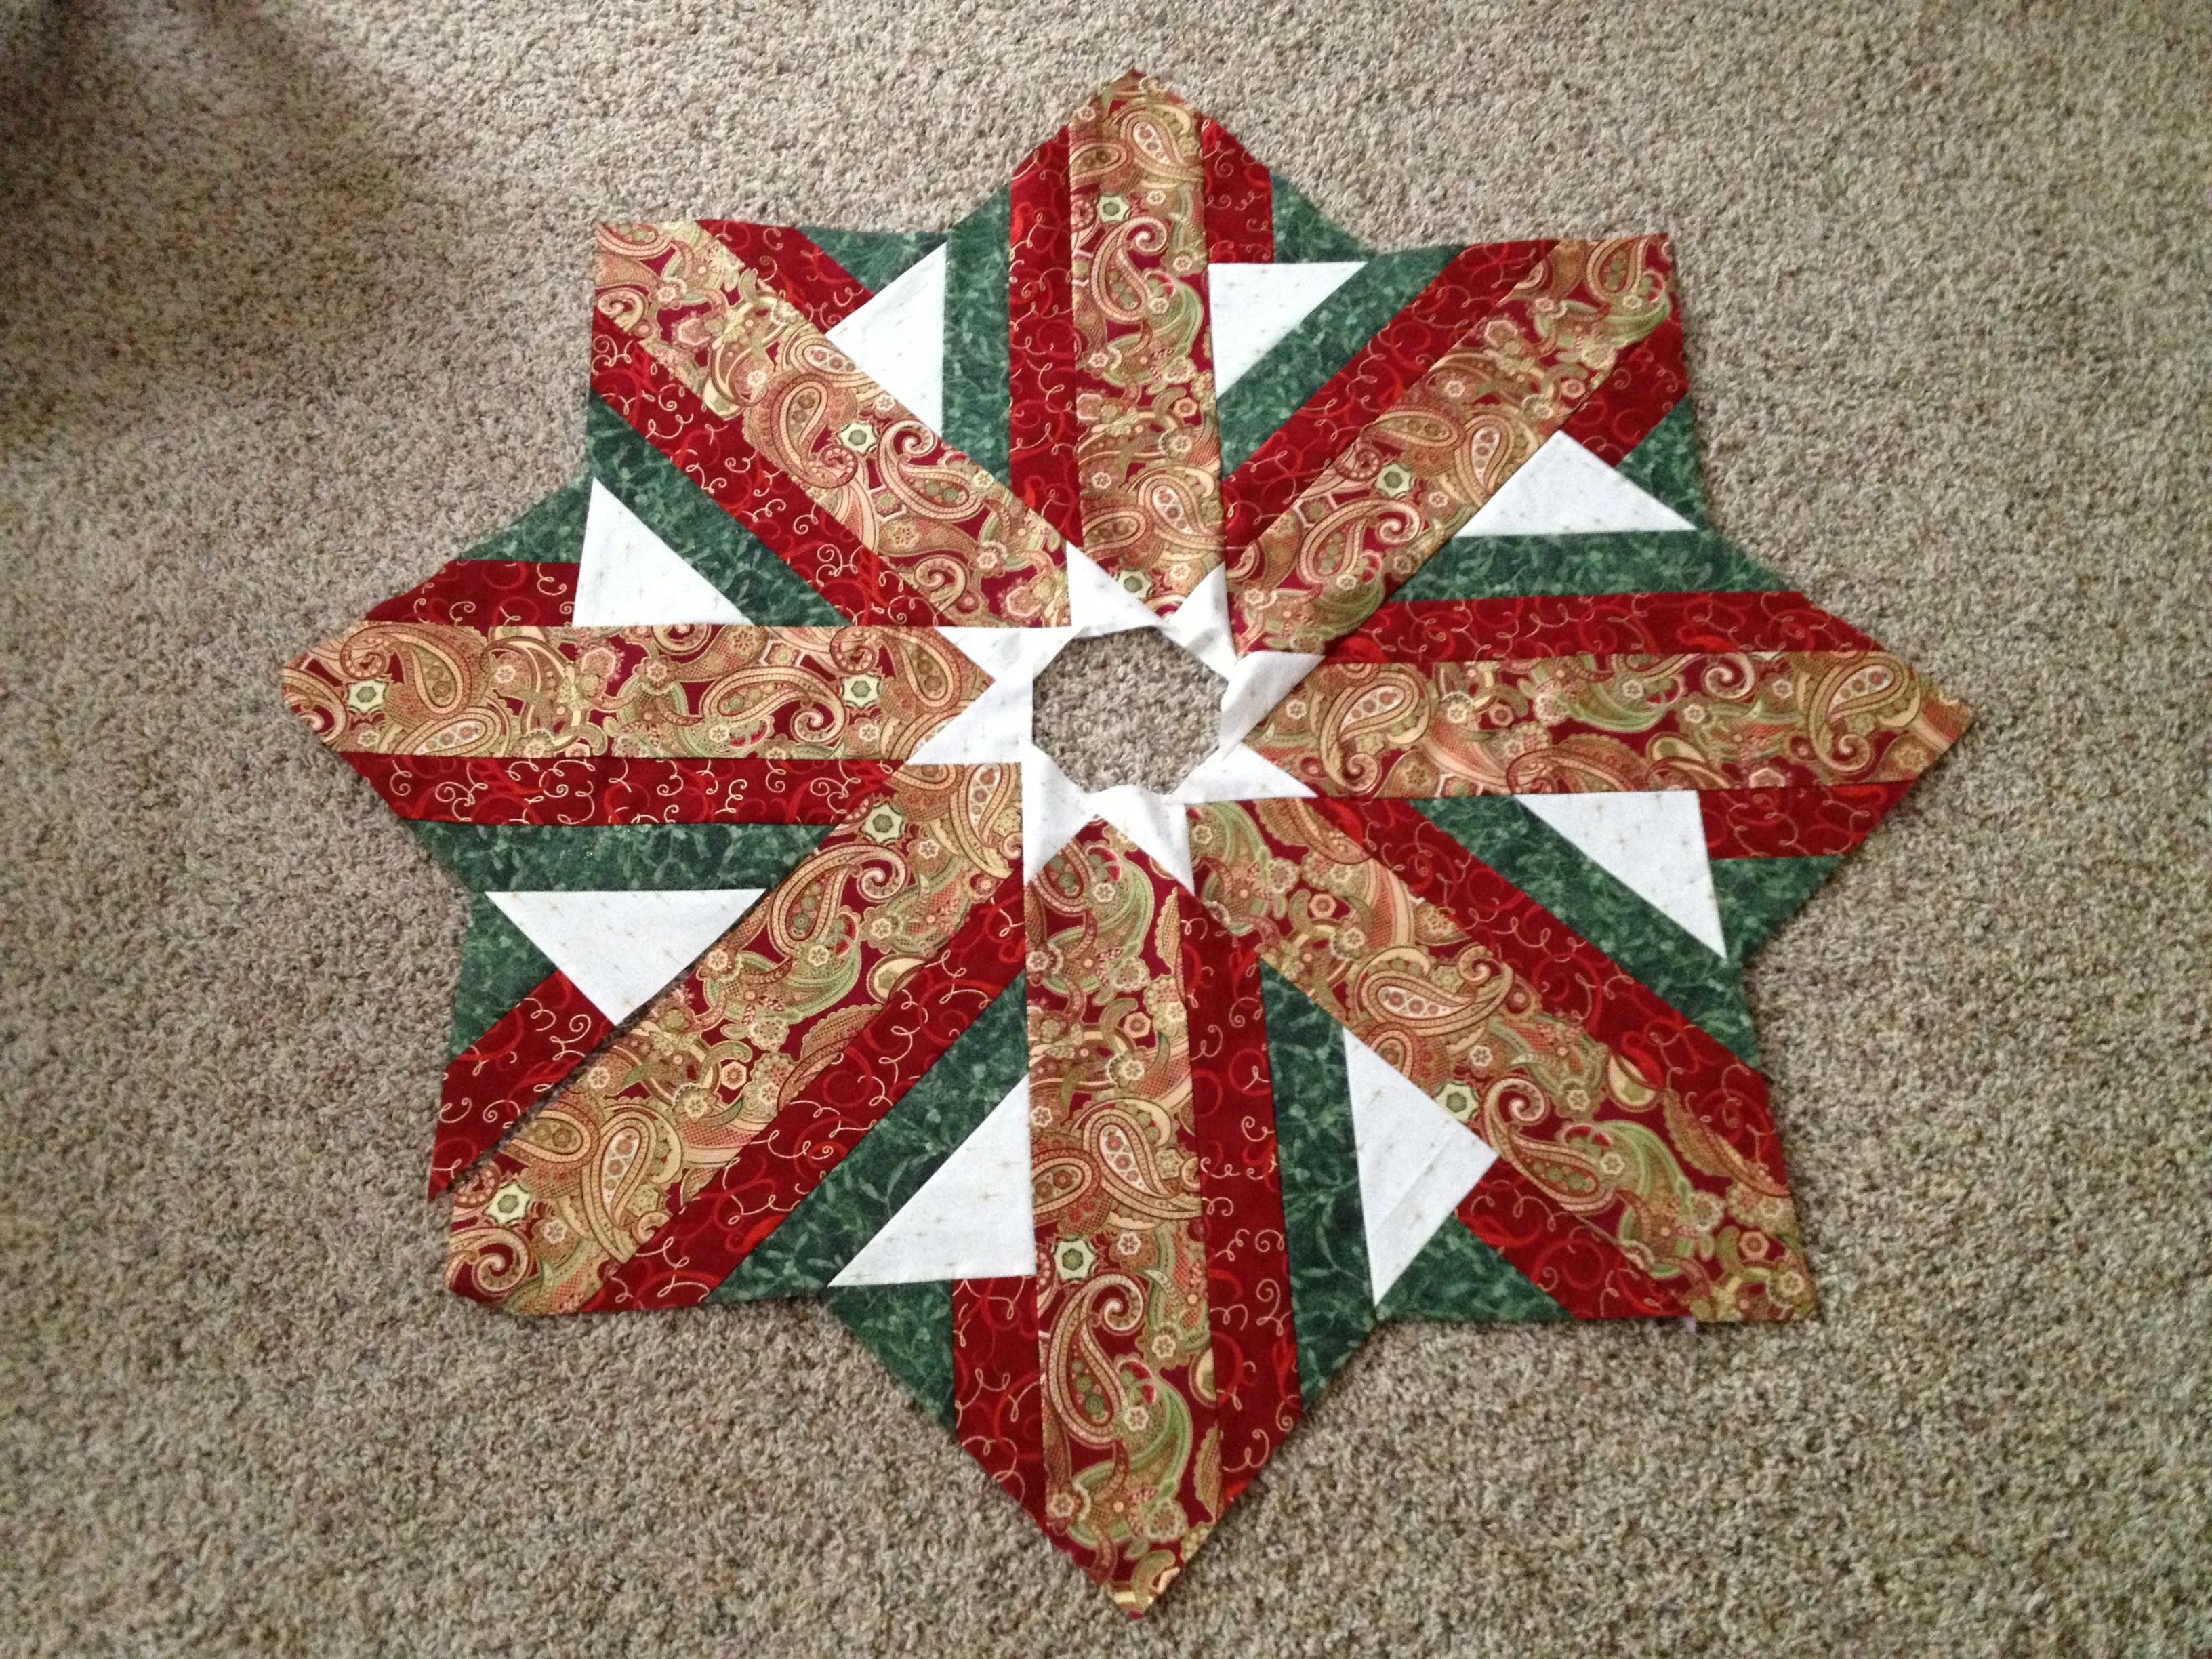 Quilted Christmas Tree Skirt Pinterest : Unfinished Christmas tree skirt top Quilt patterns Pinterest